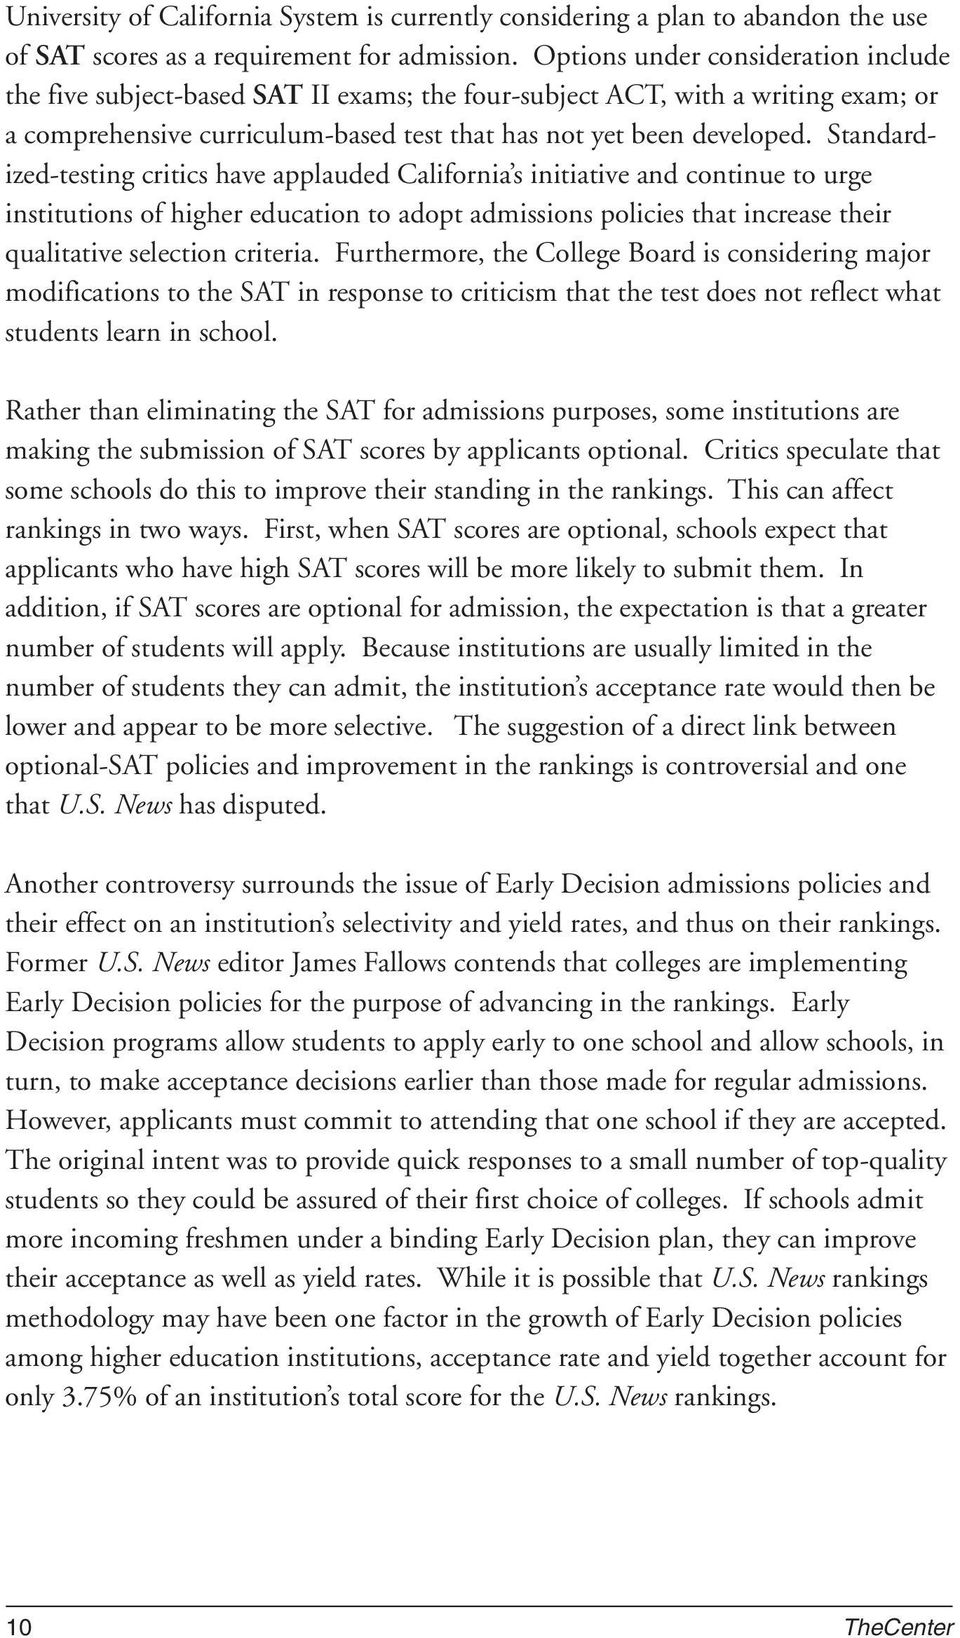 Standardized-testing critics have applauded California s initiative and continue to urge institutions of higher education to adopt admissions policies that increase their qualitative selection